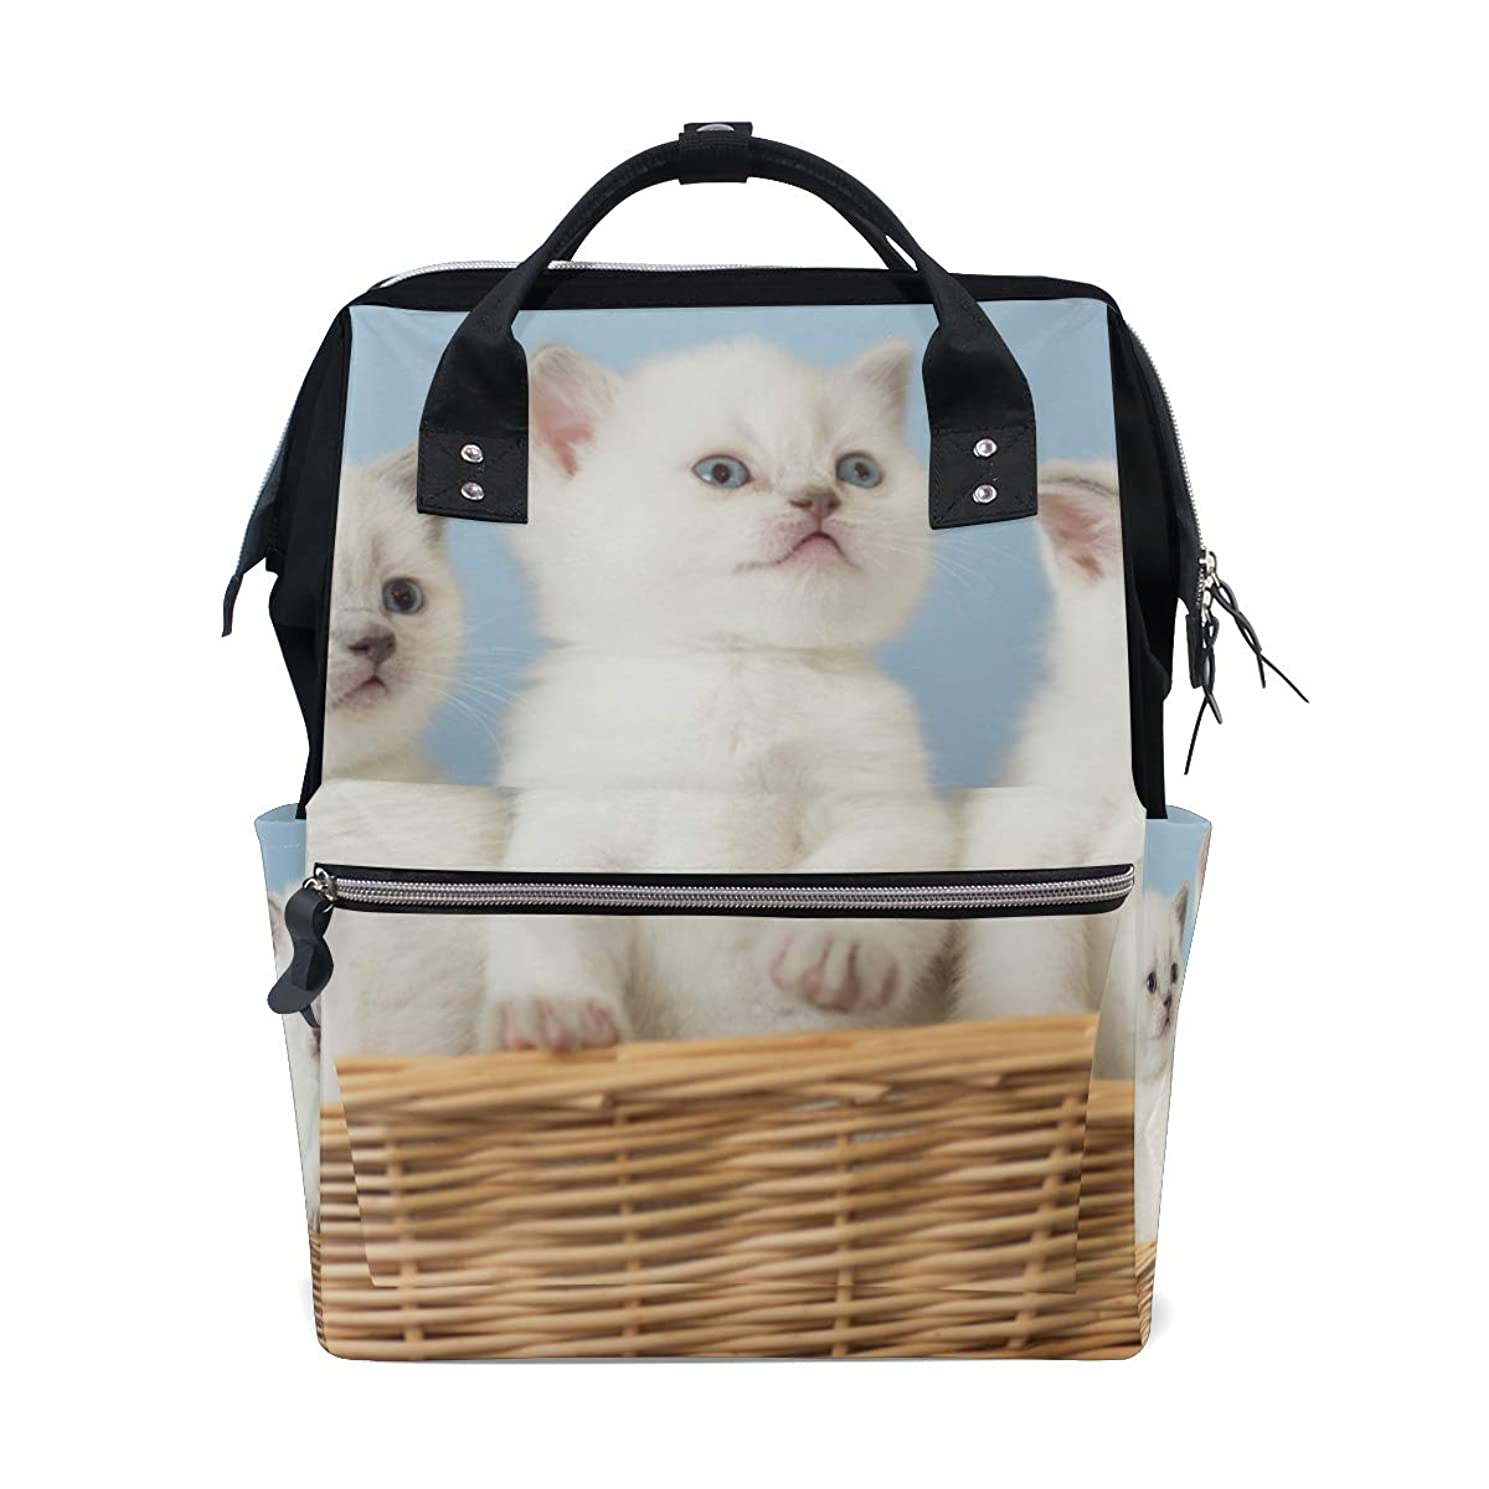 Three Cute Cats Basket School Backpack Large Capacity Mummy Bags Laptop Handbag Casual Travel Rucksack Satchel For Women Men Adult Teen Children